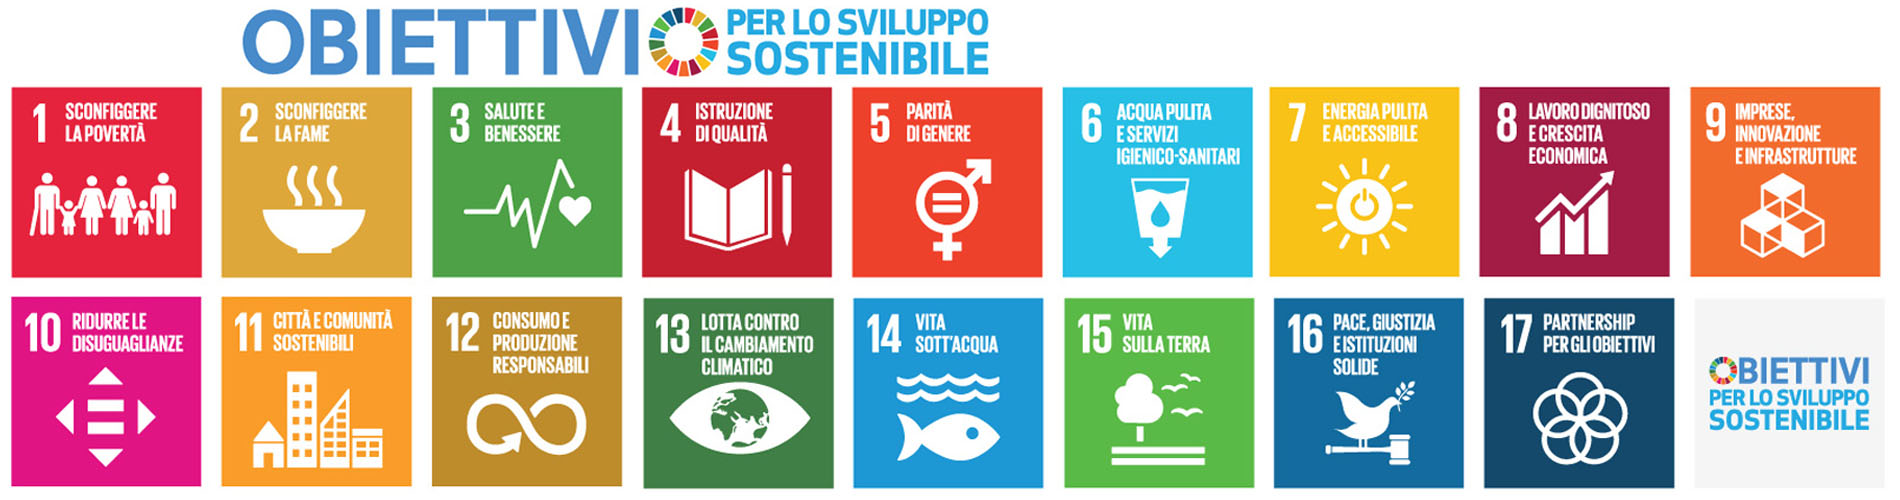 studio lancri agenda onu 2030 sdg holder 1